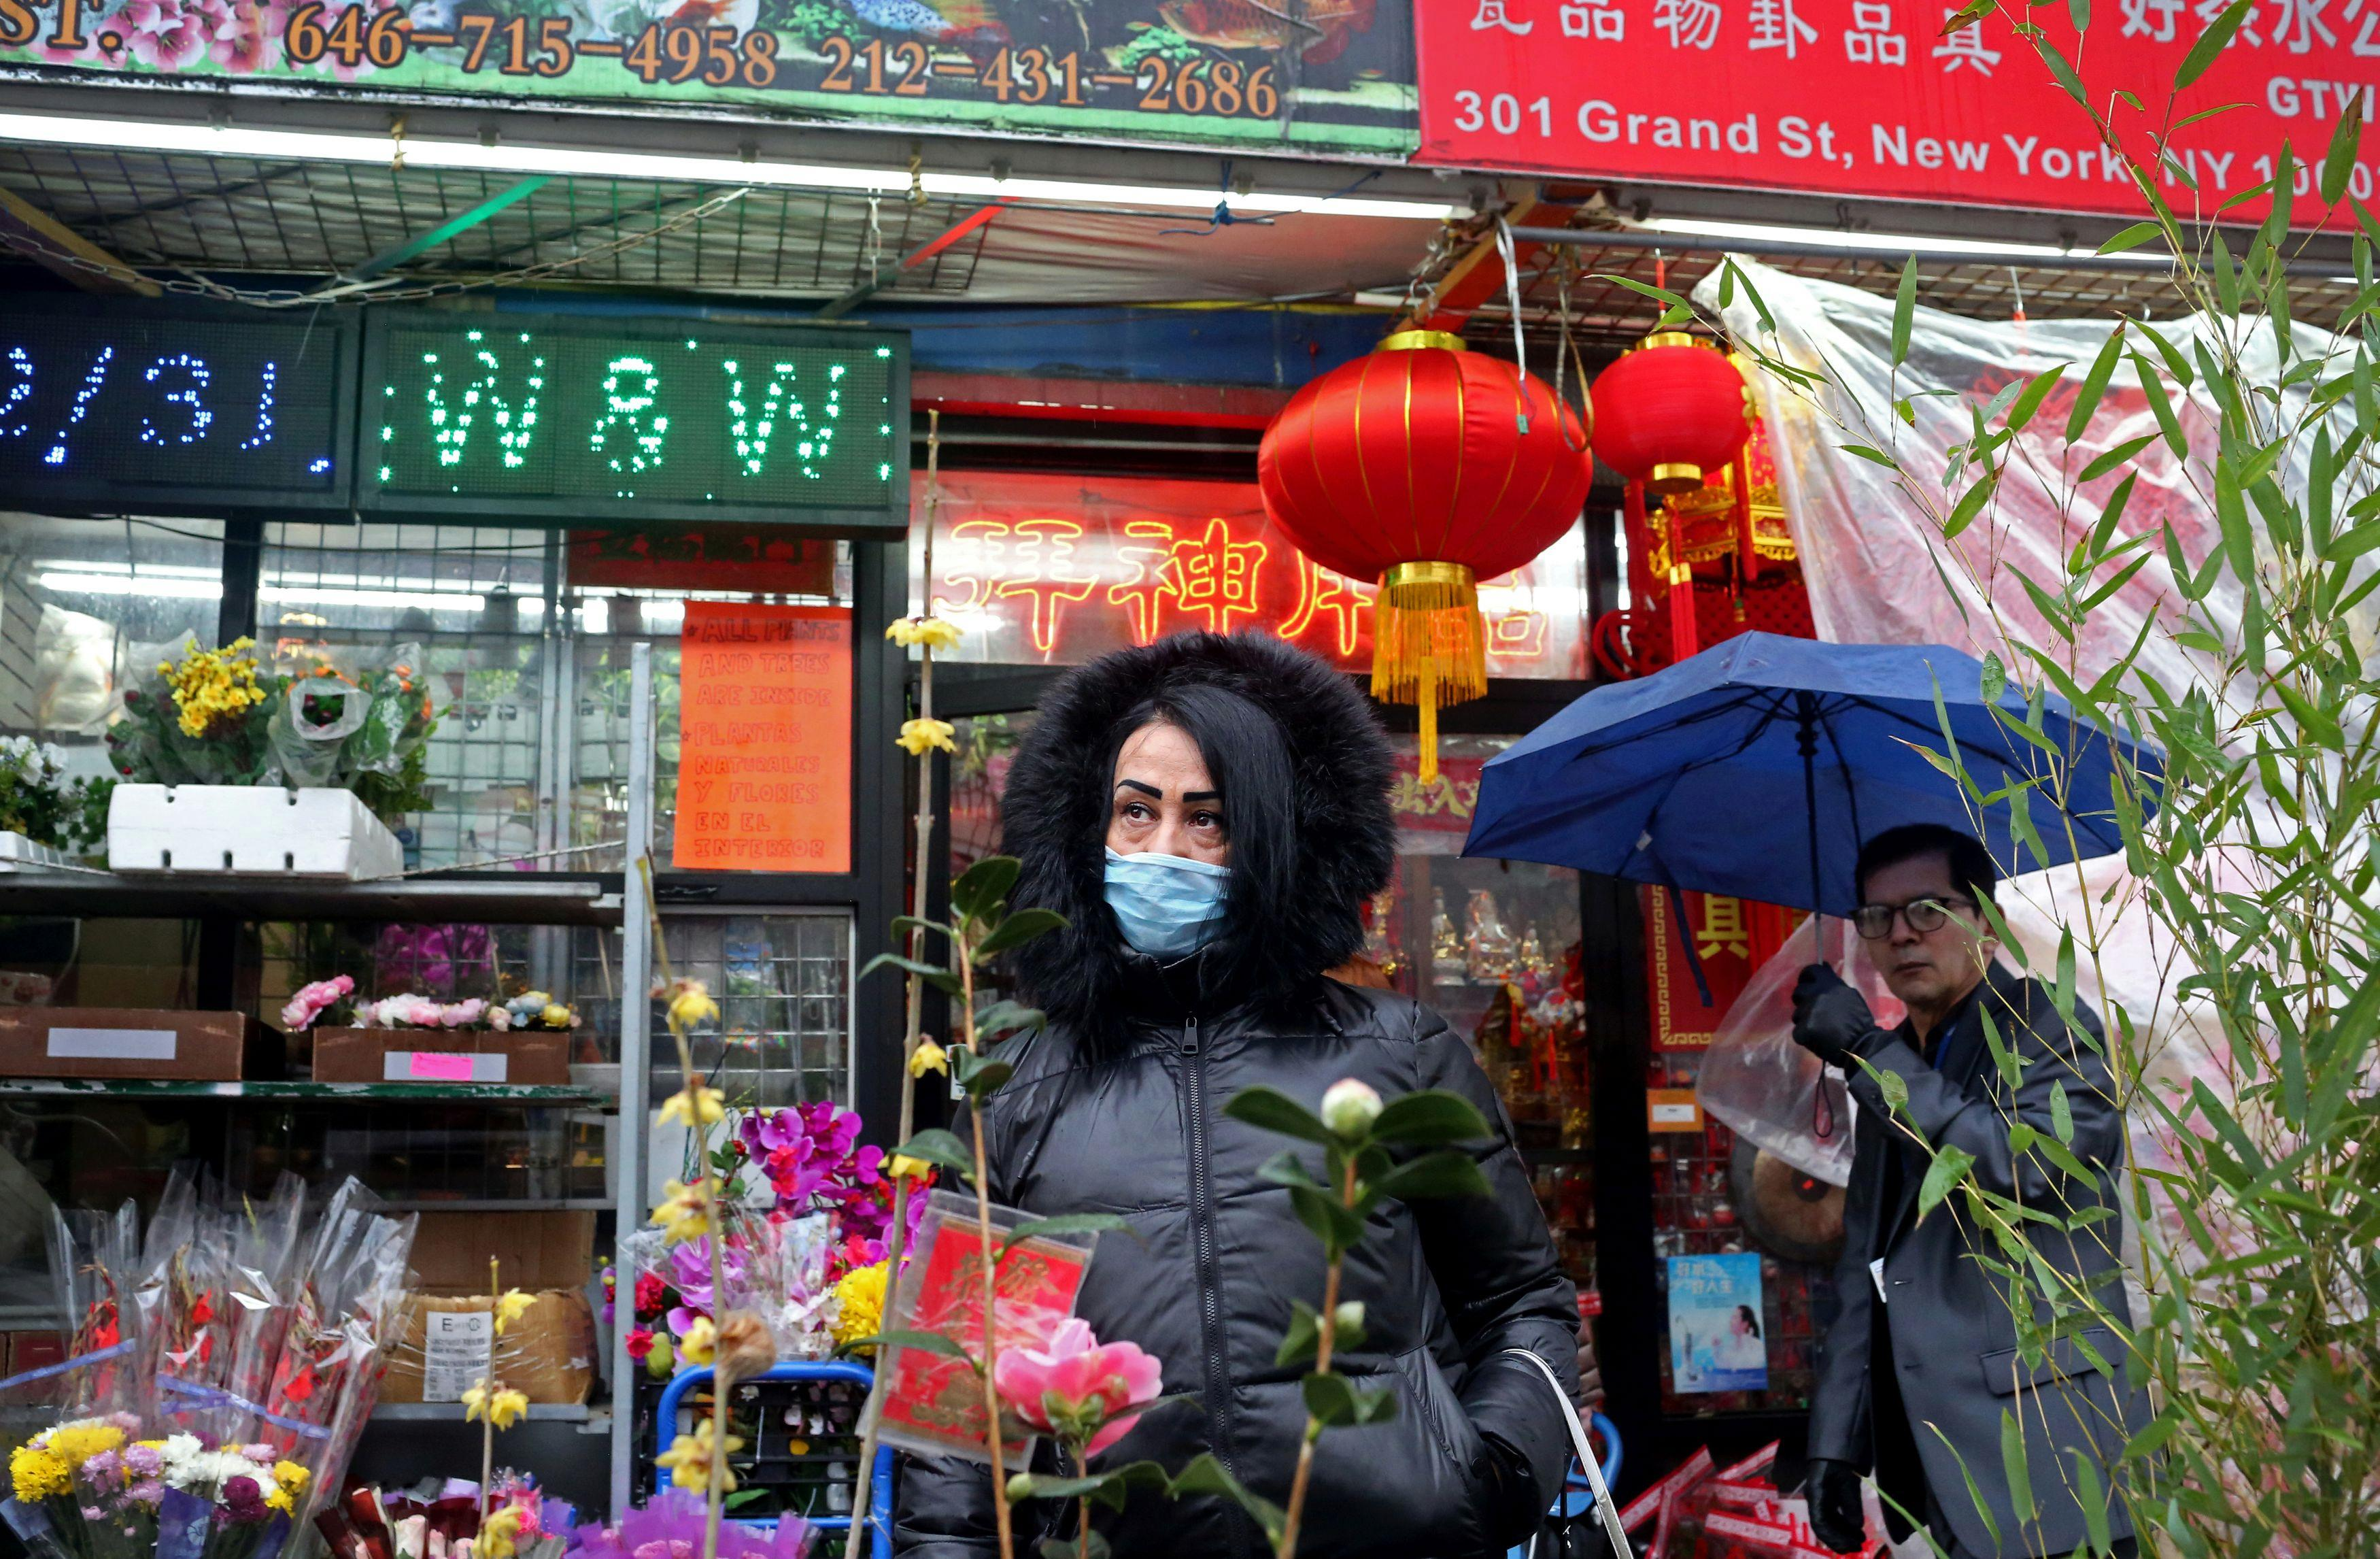 'People are scared': New York City's Chinatown takes hit over coronavirus fears